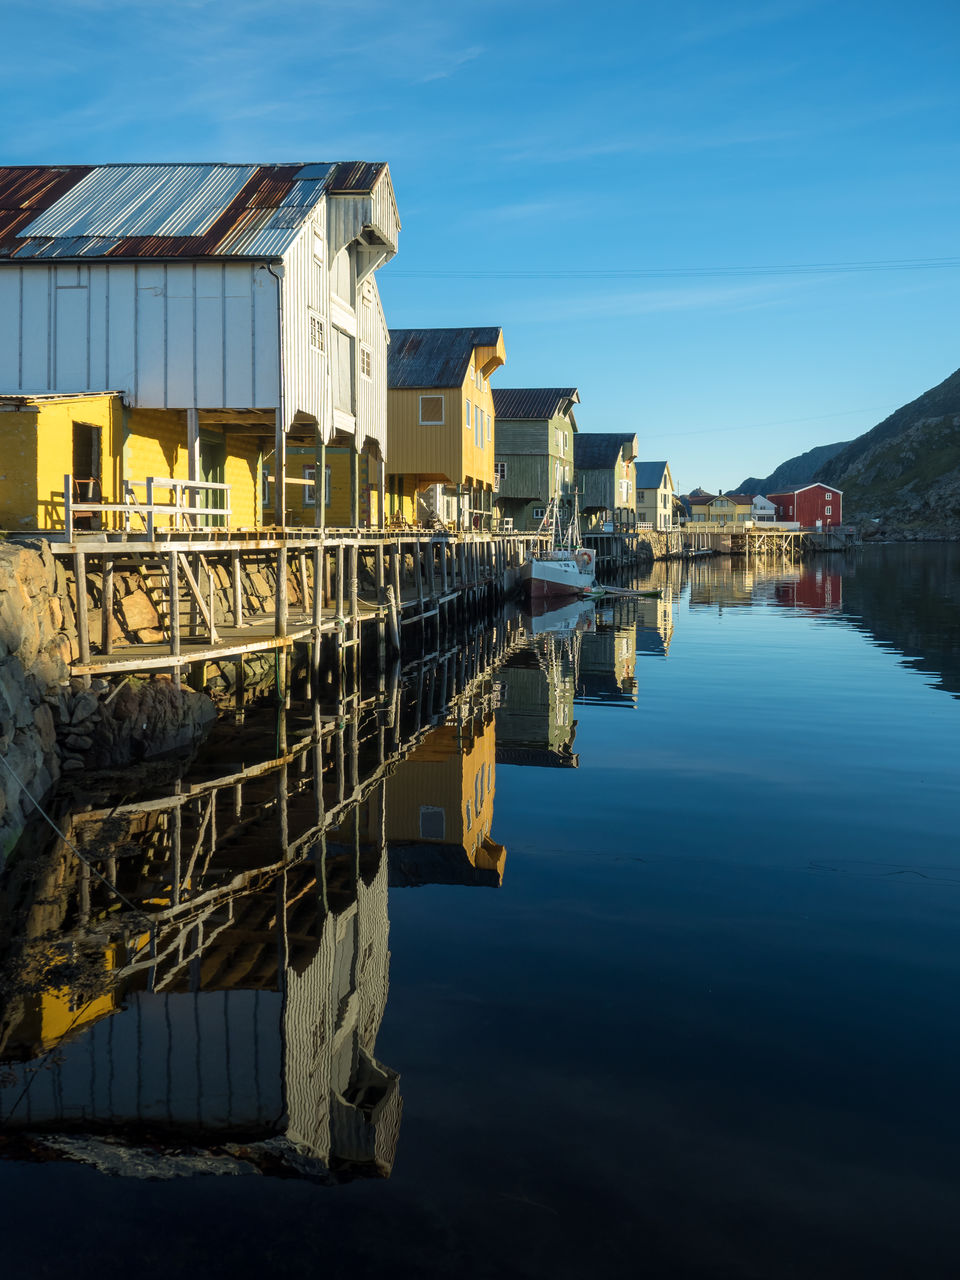 architecture, built structure, water, reflection, building exterior, sky, blue, outdoors, no people, waterfront, day, nature